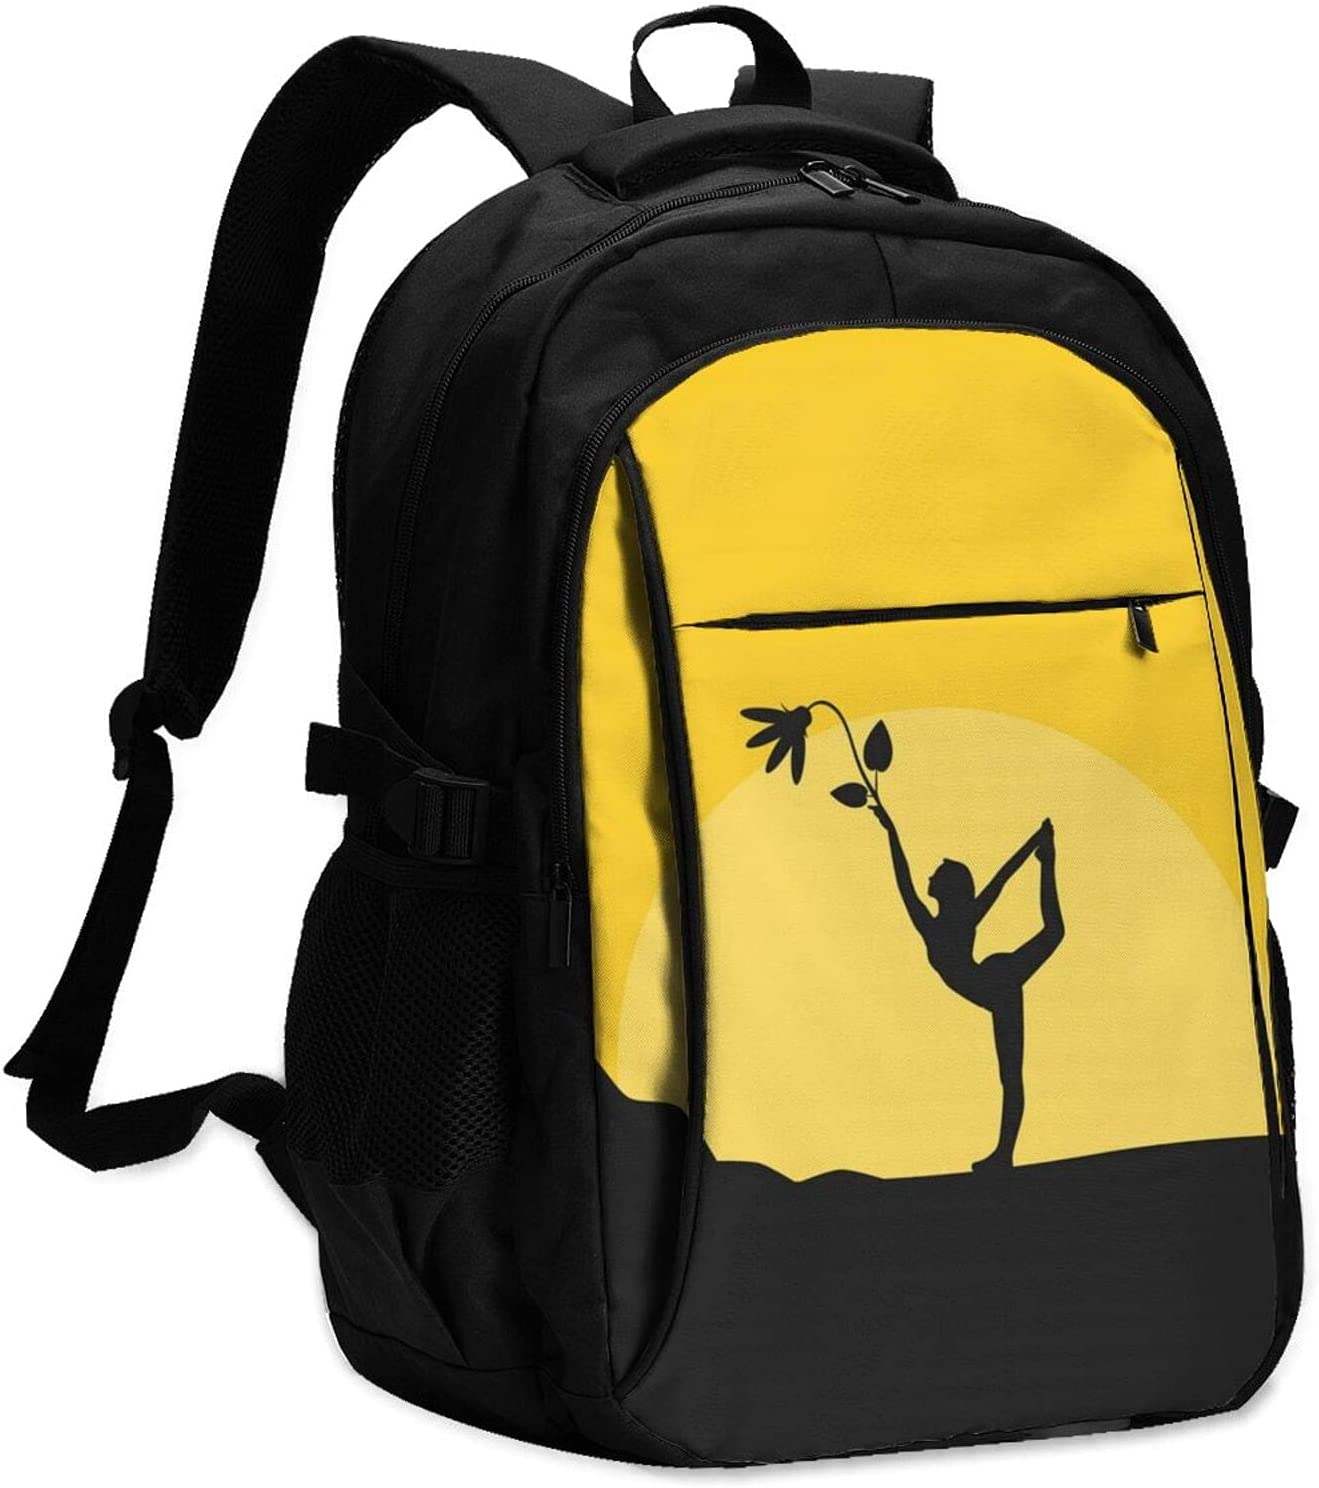 Buibuhii Yoga Sunset Laptop Backpack Usb For 2021 model Port Complete Free Shipping With Charging